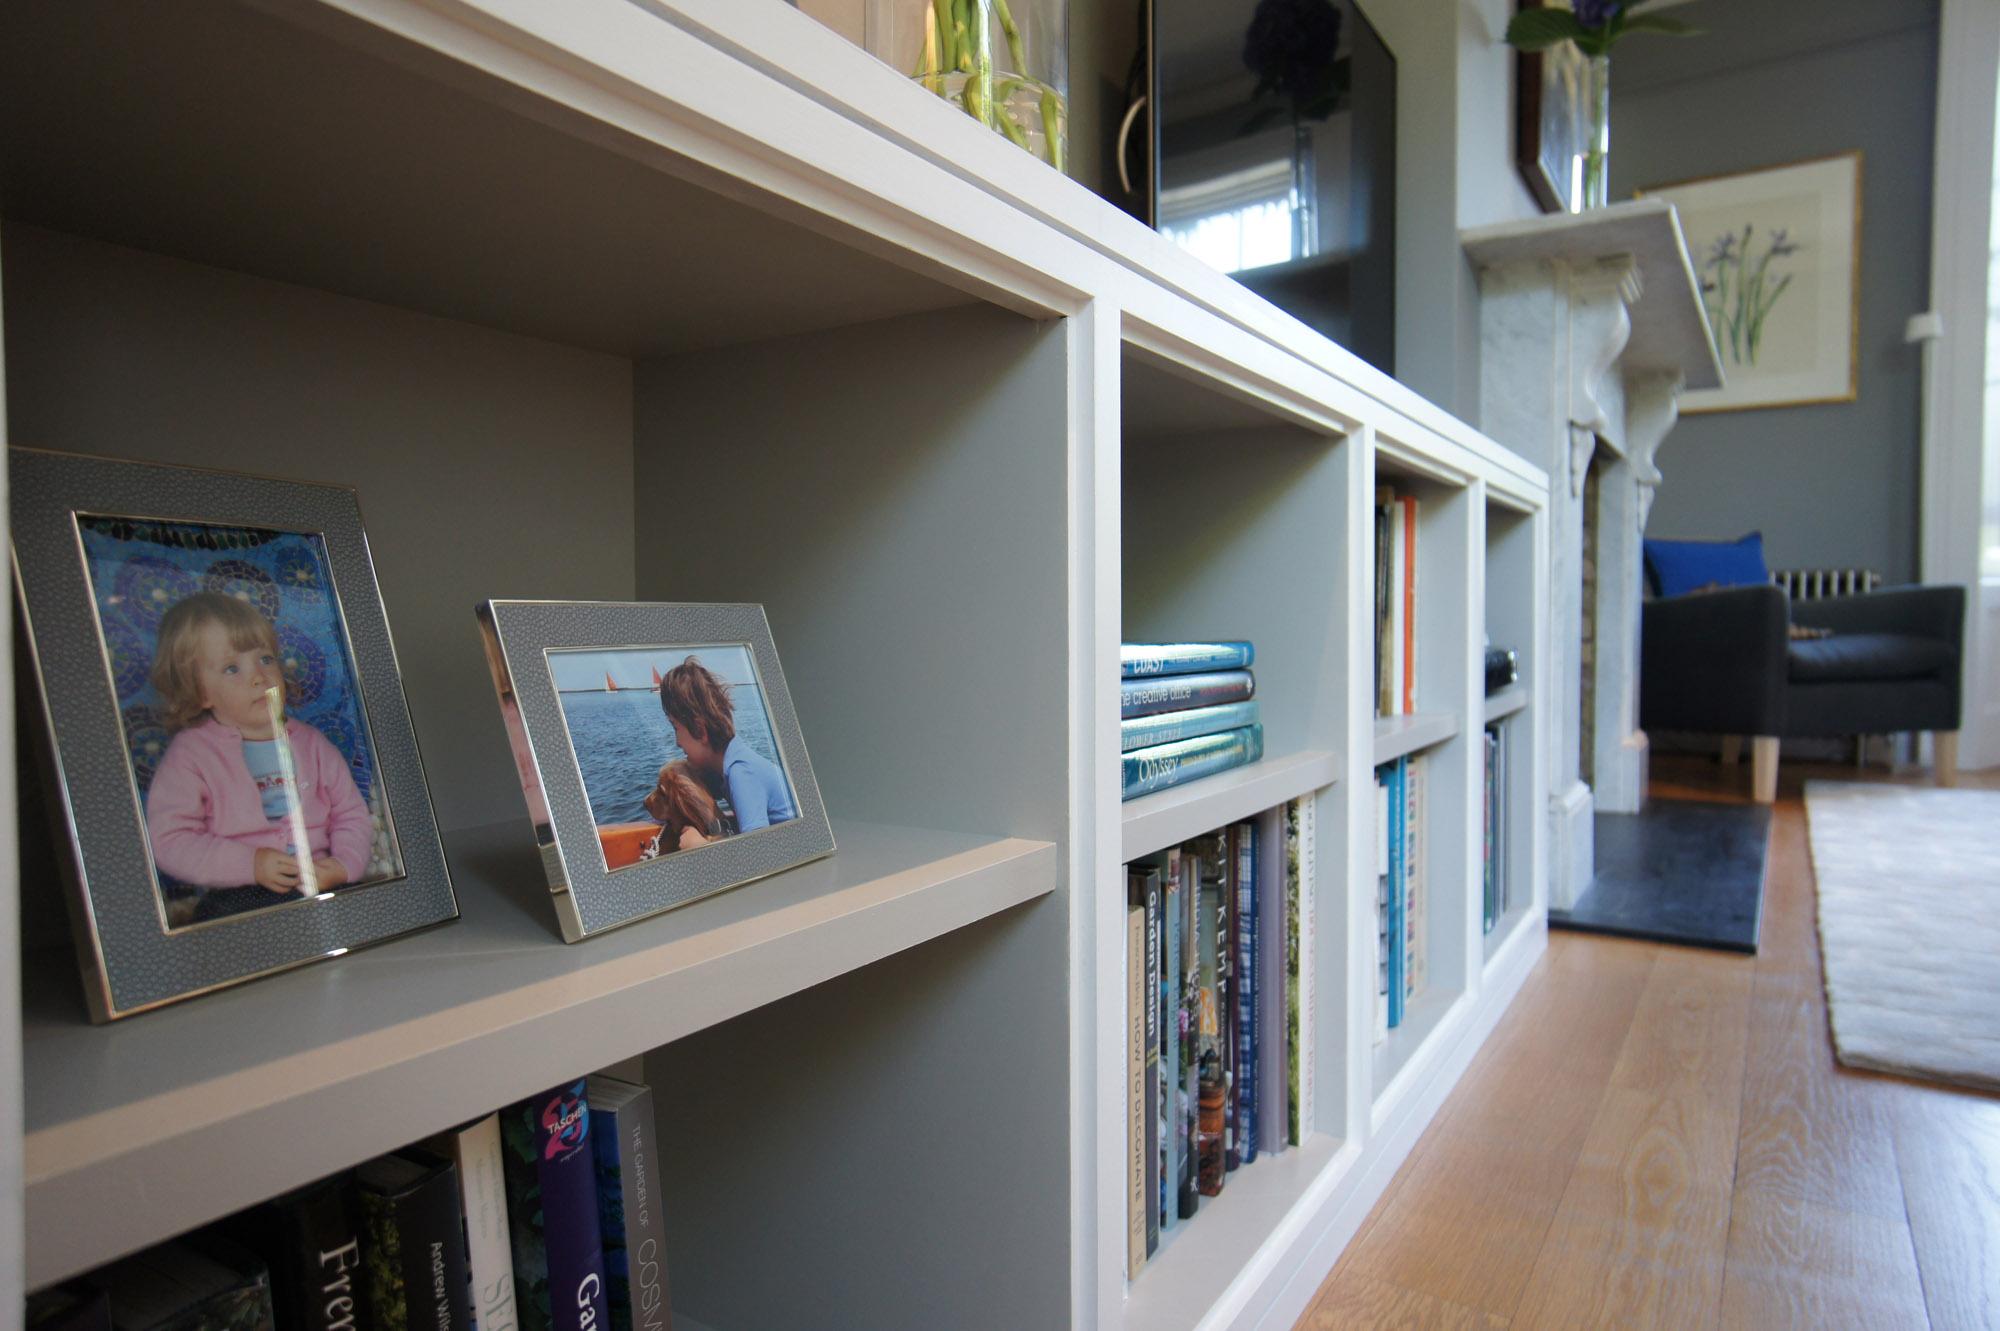 GW-Cabinetry-Interior-Solutions-Bookcases-18.jpg